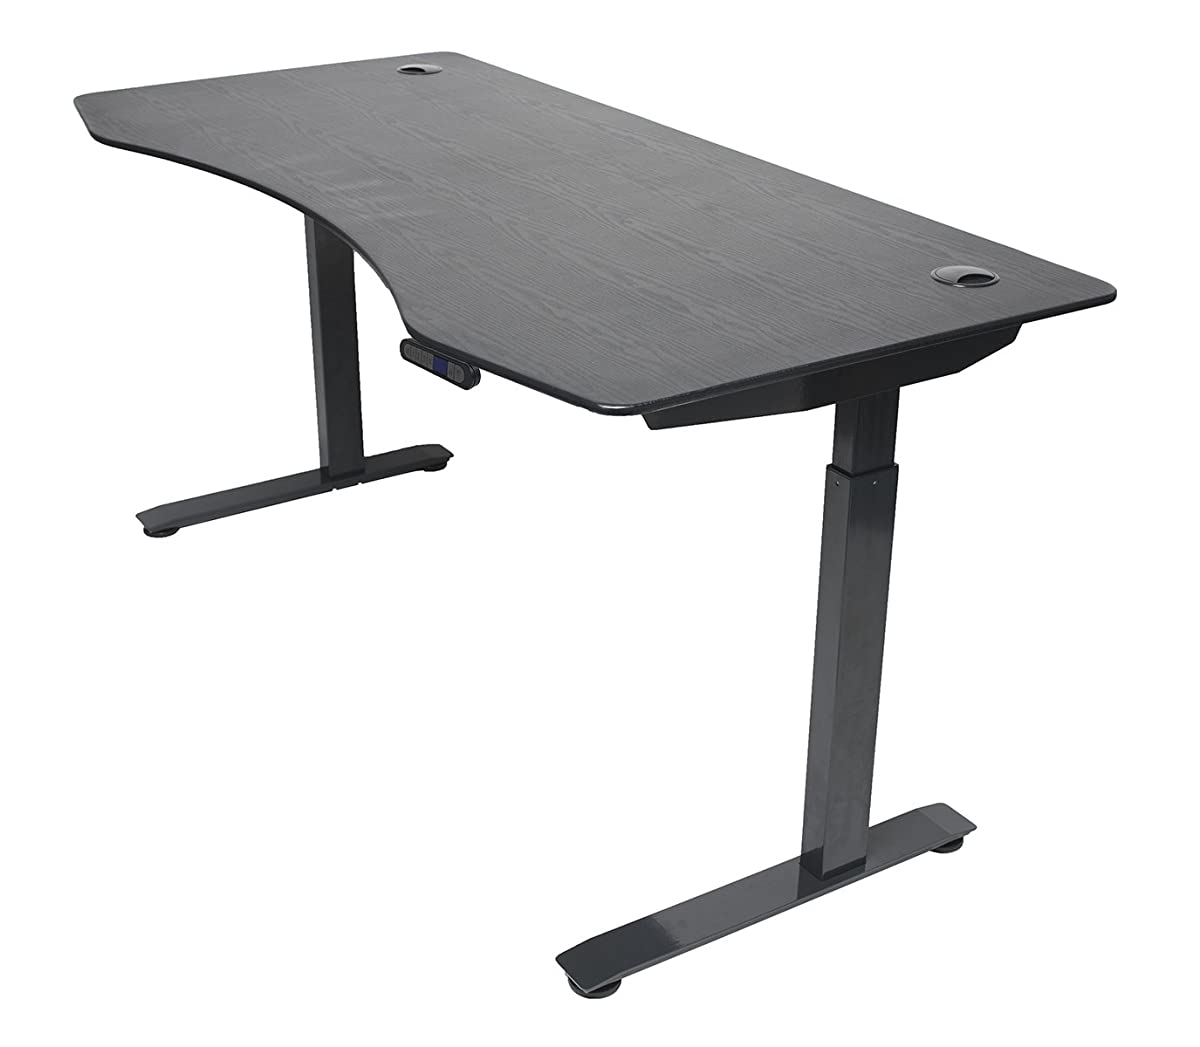 "ApexDesk Elite Series 60"" W Electric Height Adjustable Standing Desk (Memory Controller, 60"" Top in Black, Black Frame)"